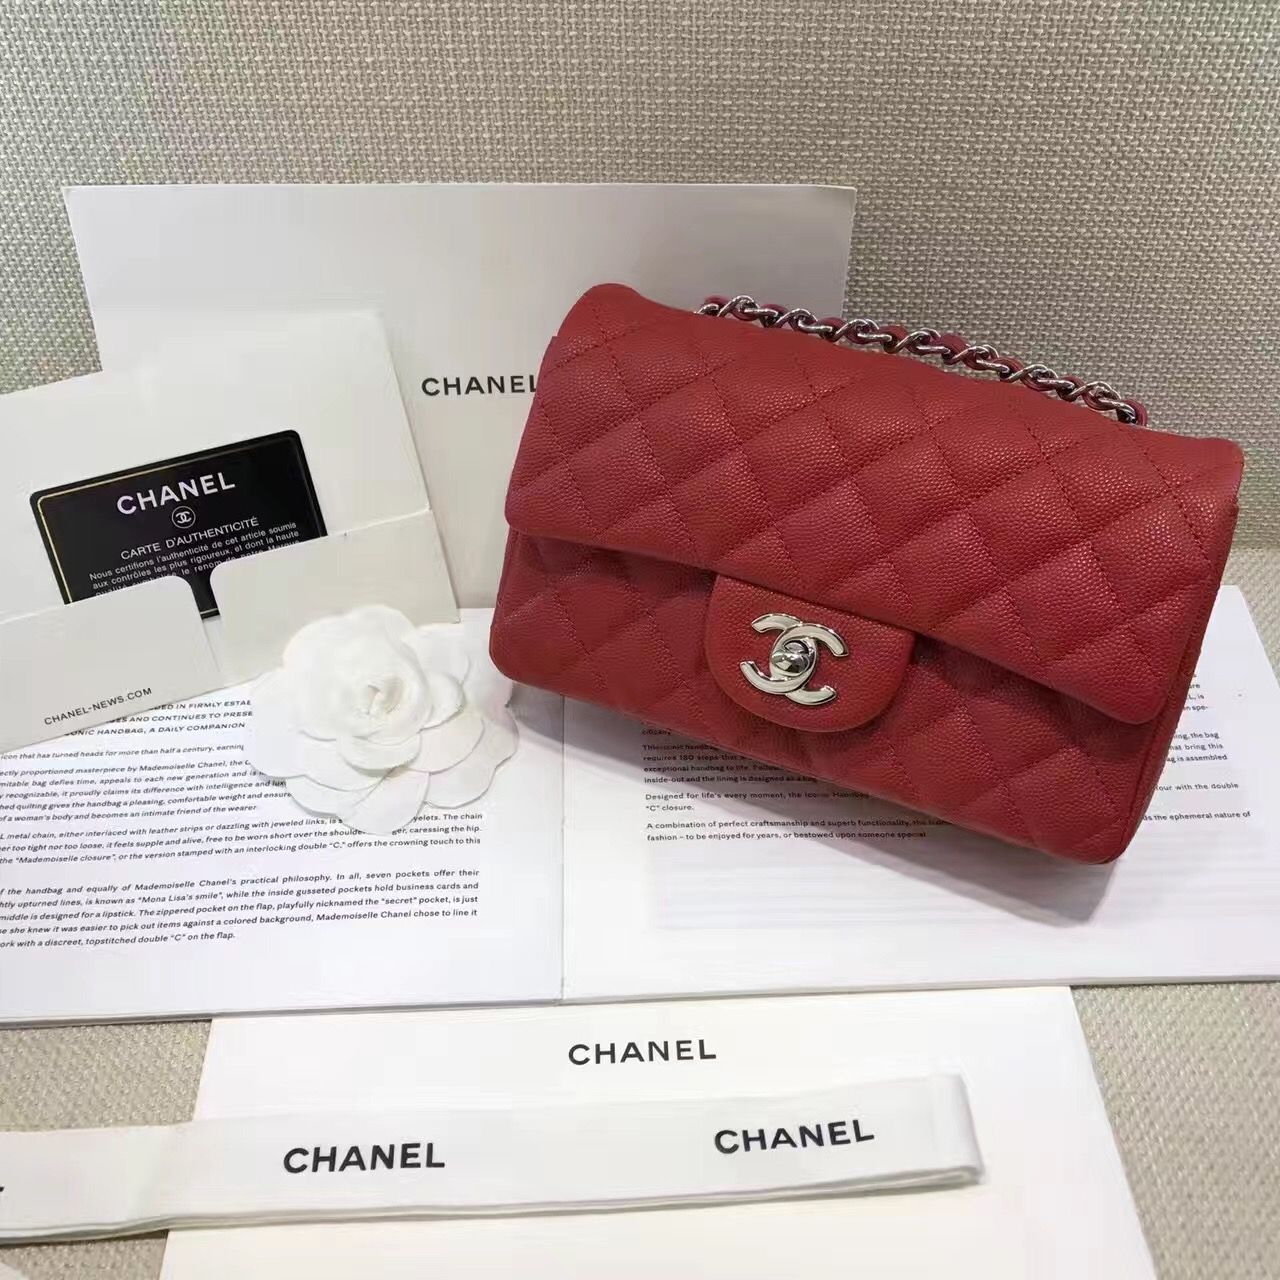 1a48d13adc303f Authentic Quality 1:1 Mirror Replica Chanel Classic Flap Bag Mini Red  Caviar Leather Silver Hardware A69900